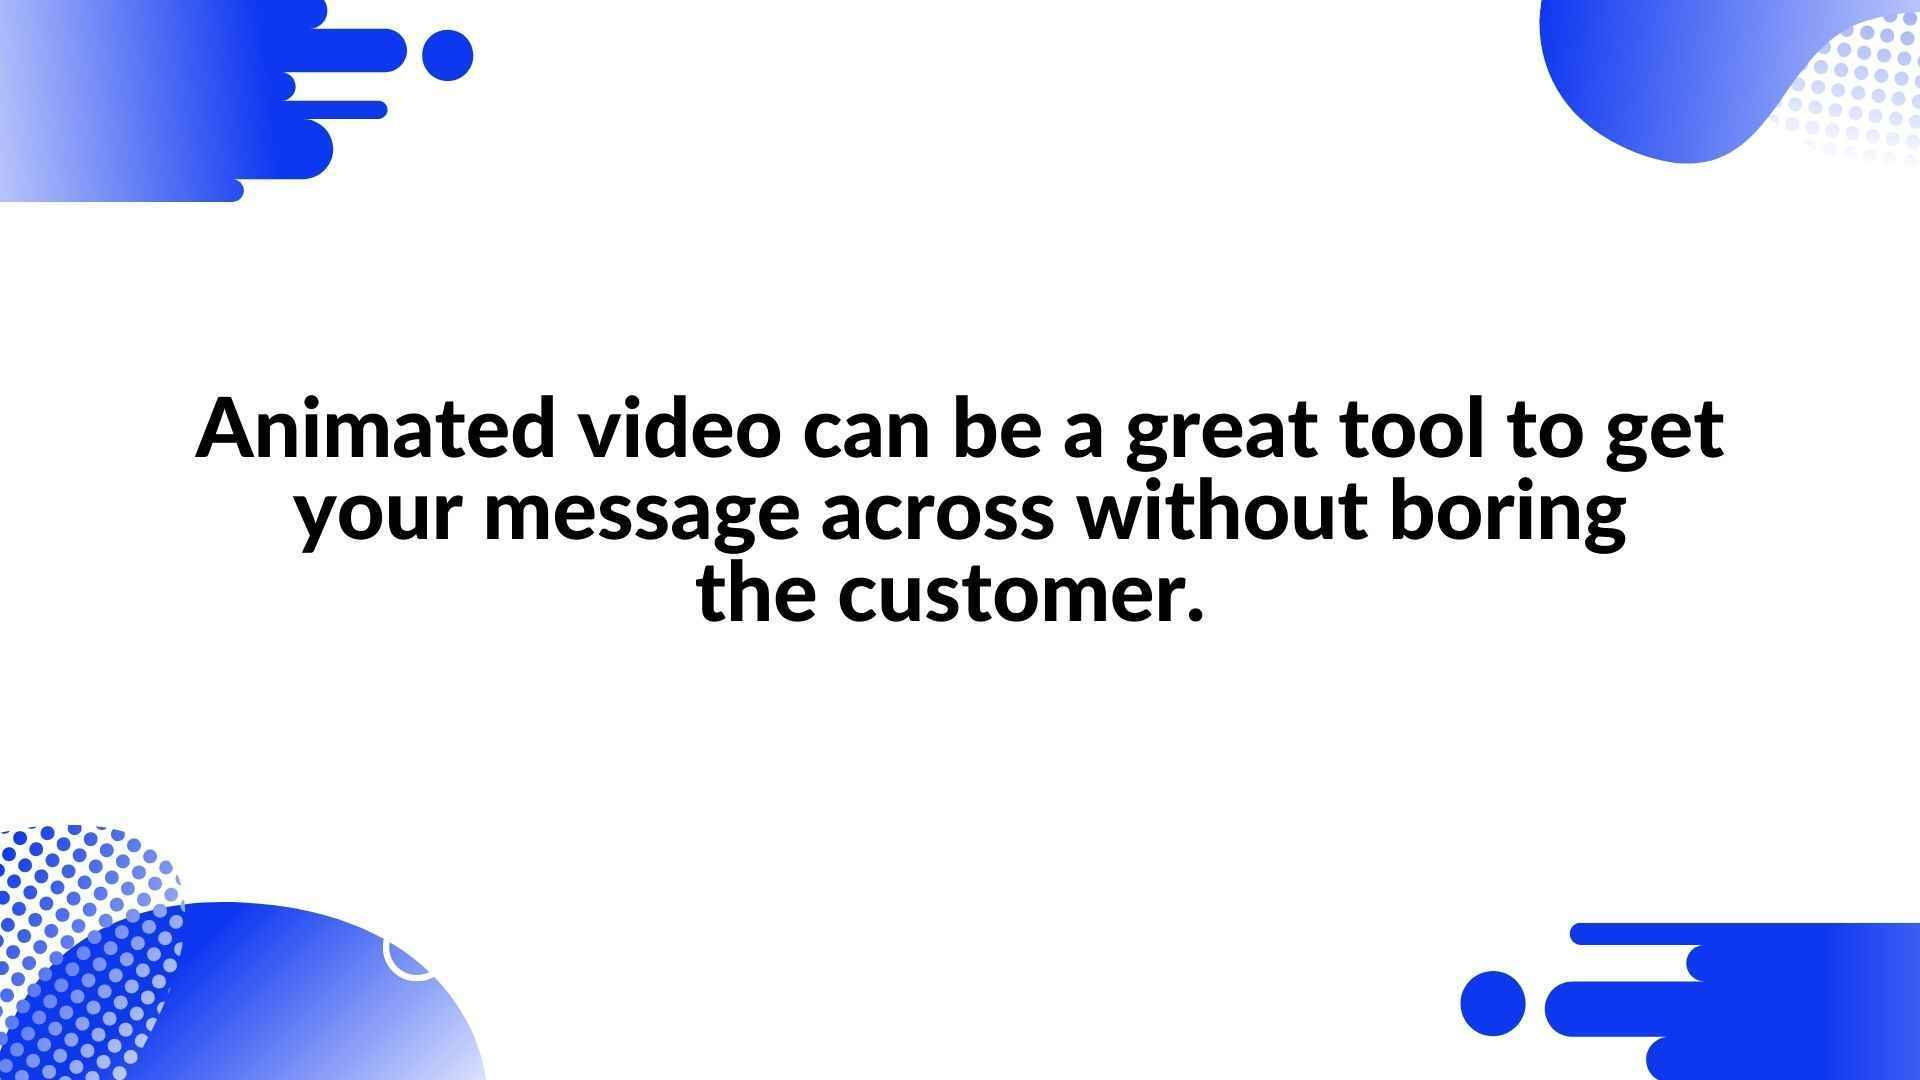 Animated video is a great tool for conveying your message without boredom to the customer.